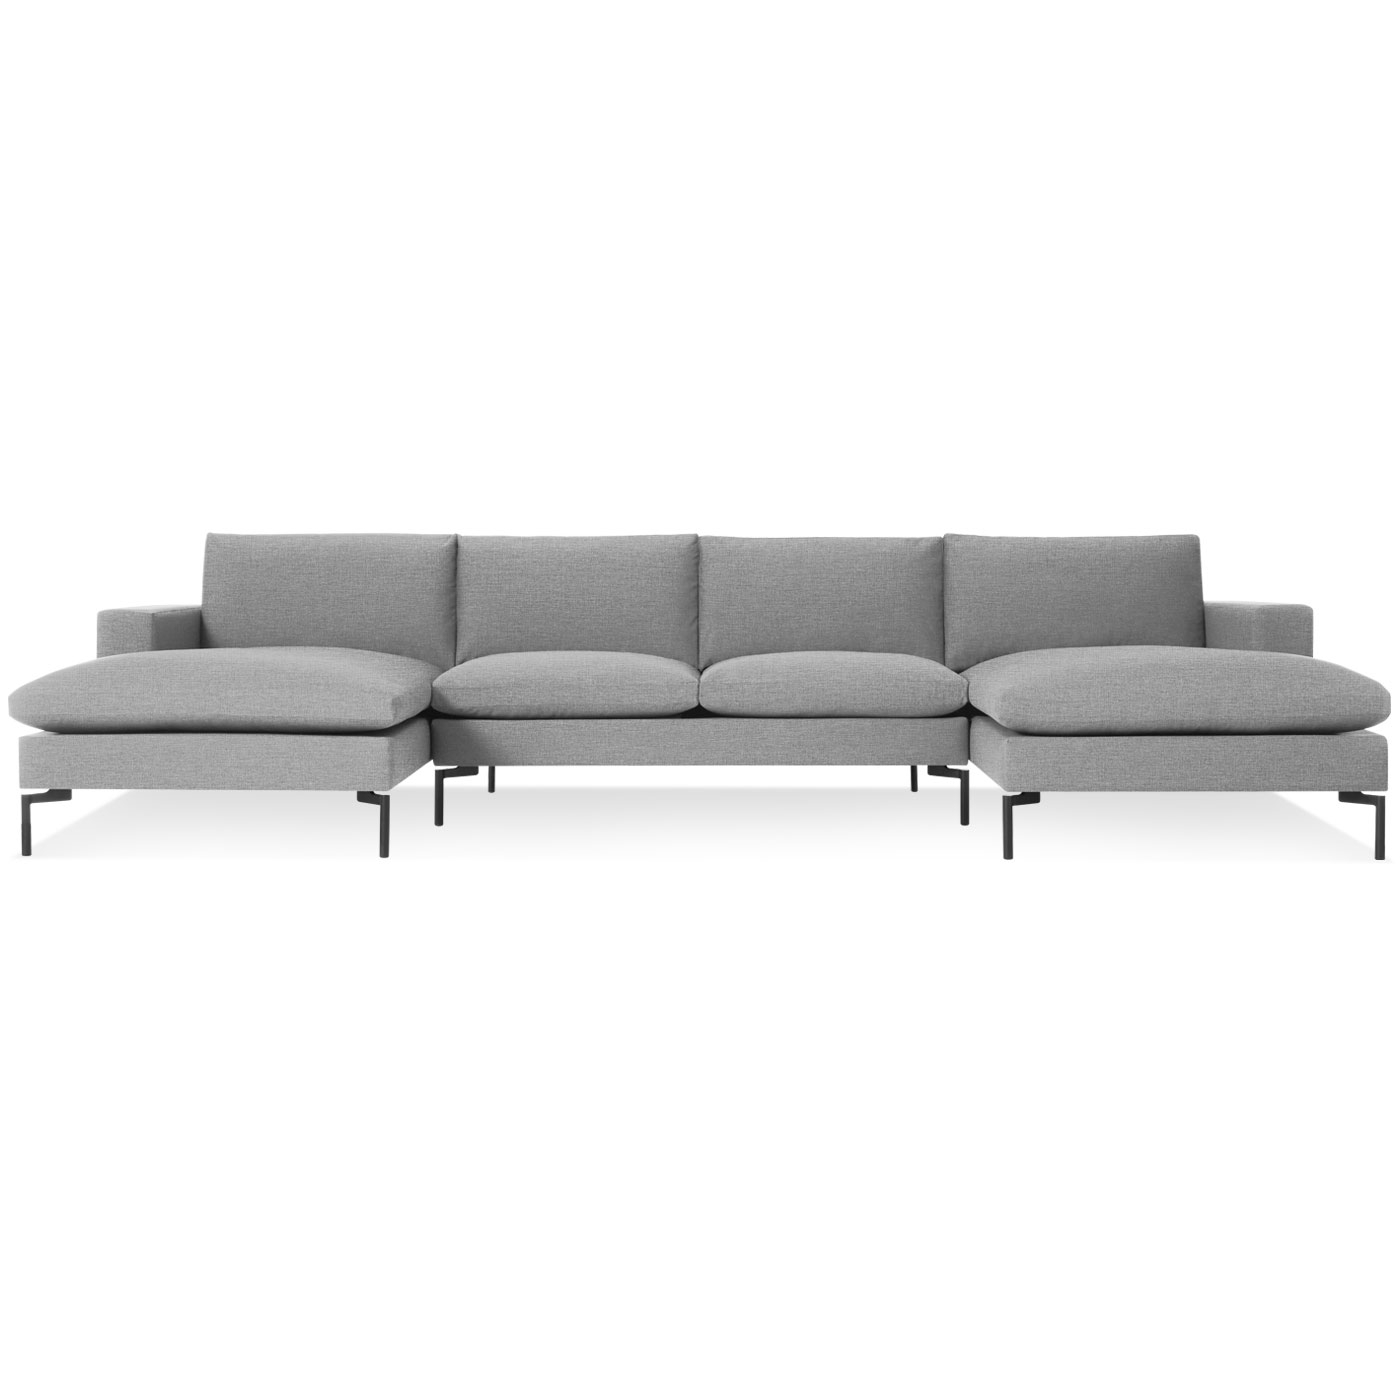 Well Known Modern U Shaped Sectionals Intended For New Standard Modern U Shaped Sectional Sofa (View 13 of 20)